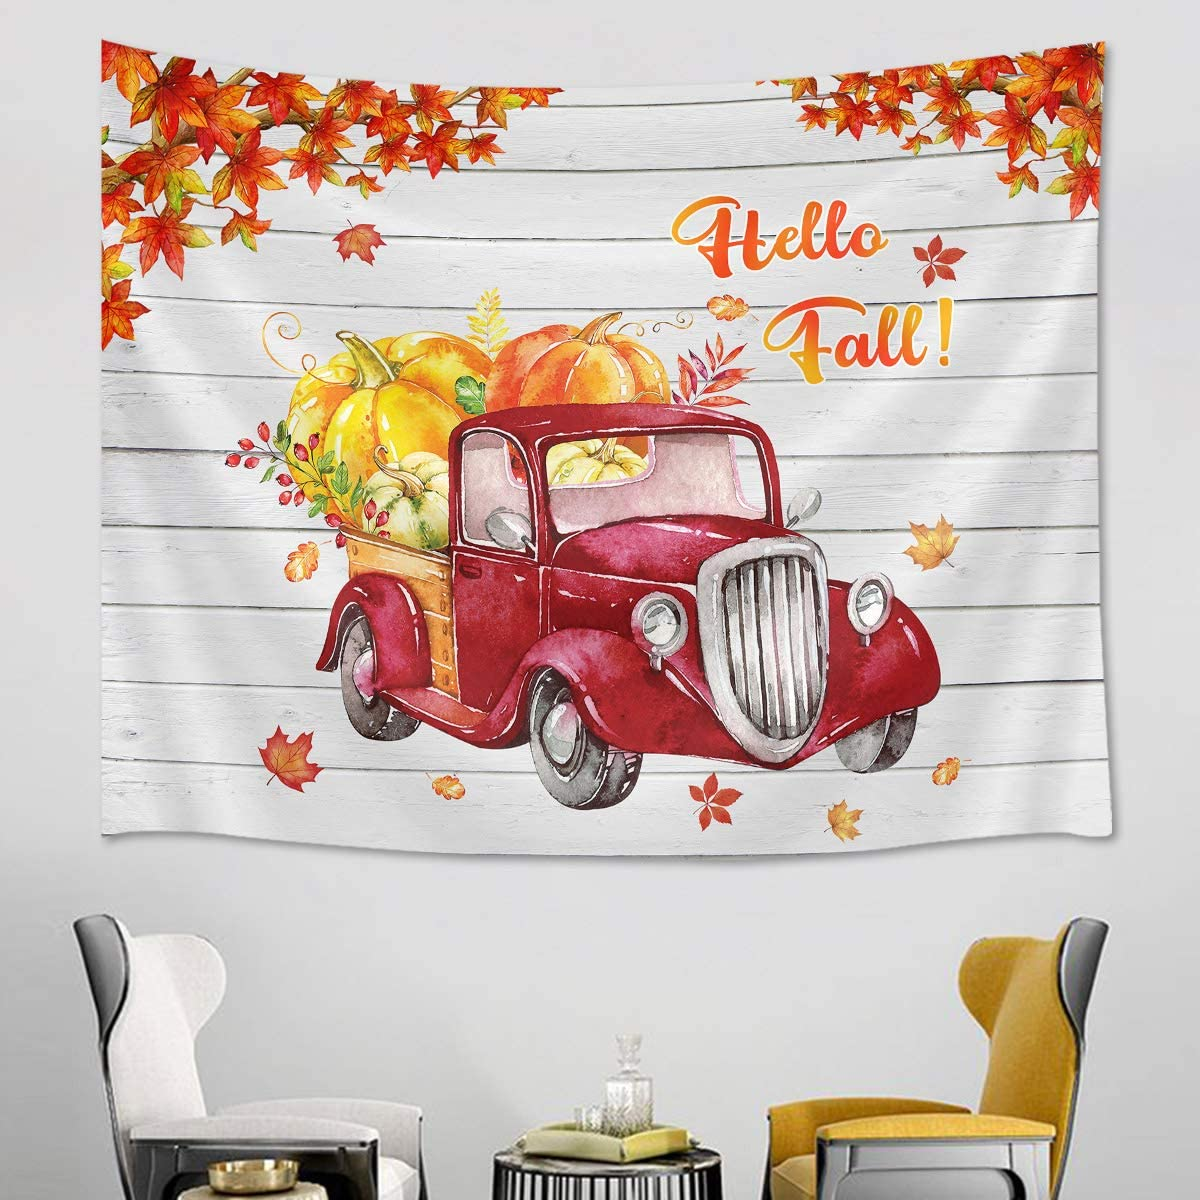 LB Fall Harvest Tapestry Autumn Maple Leaves with Red Truck Pulling Plump Pumpkin Farm Tapestries for Thansgiving Day for Bedroom Living Dining Room Dorm Decor 93 Wx72 L